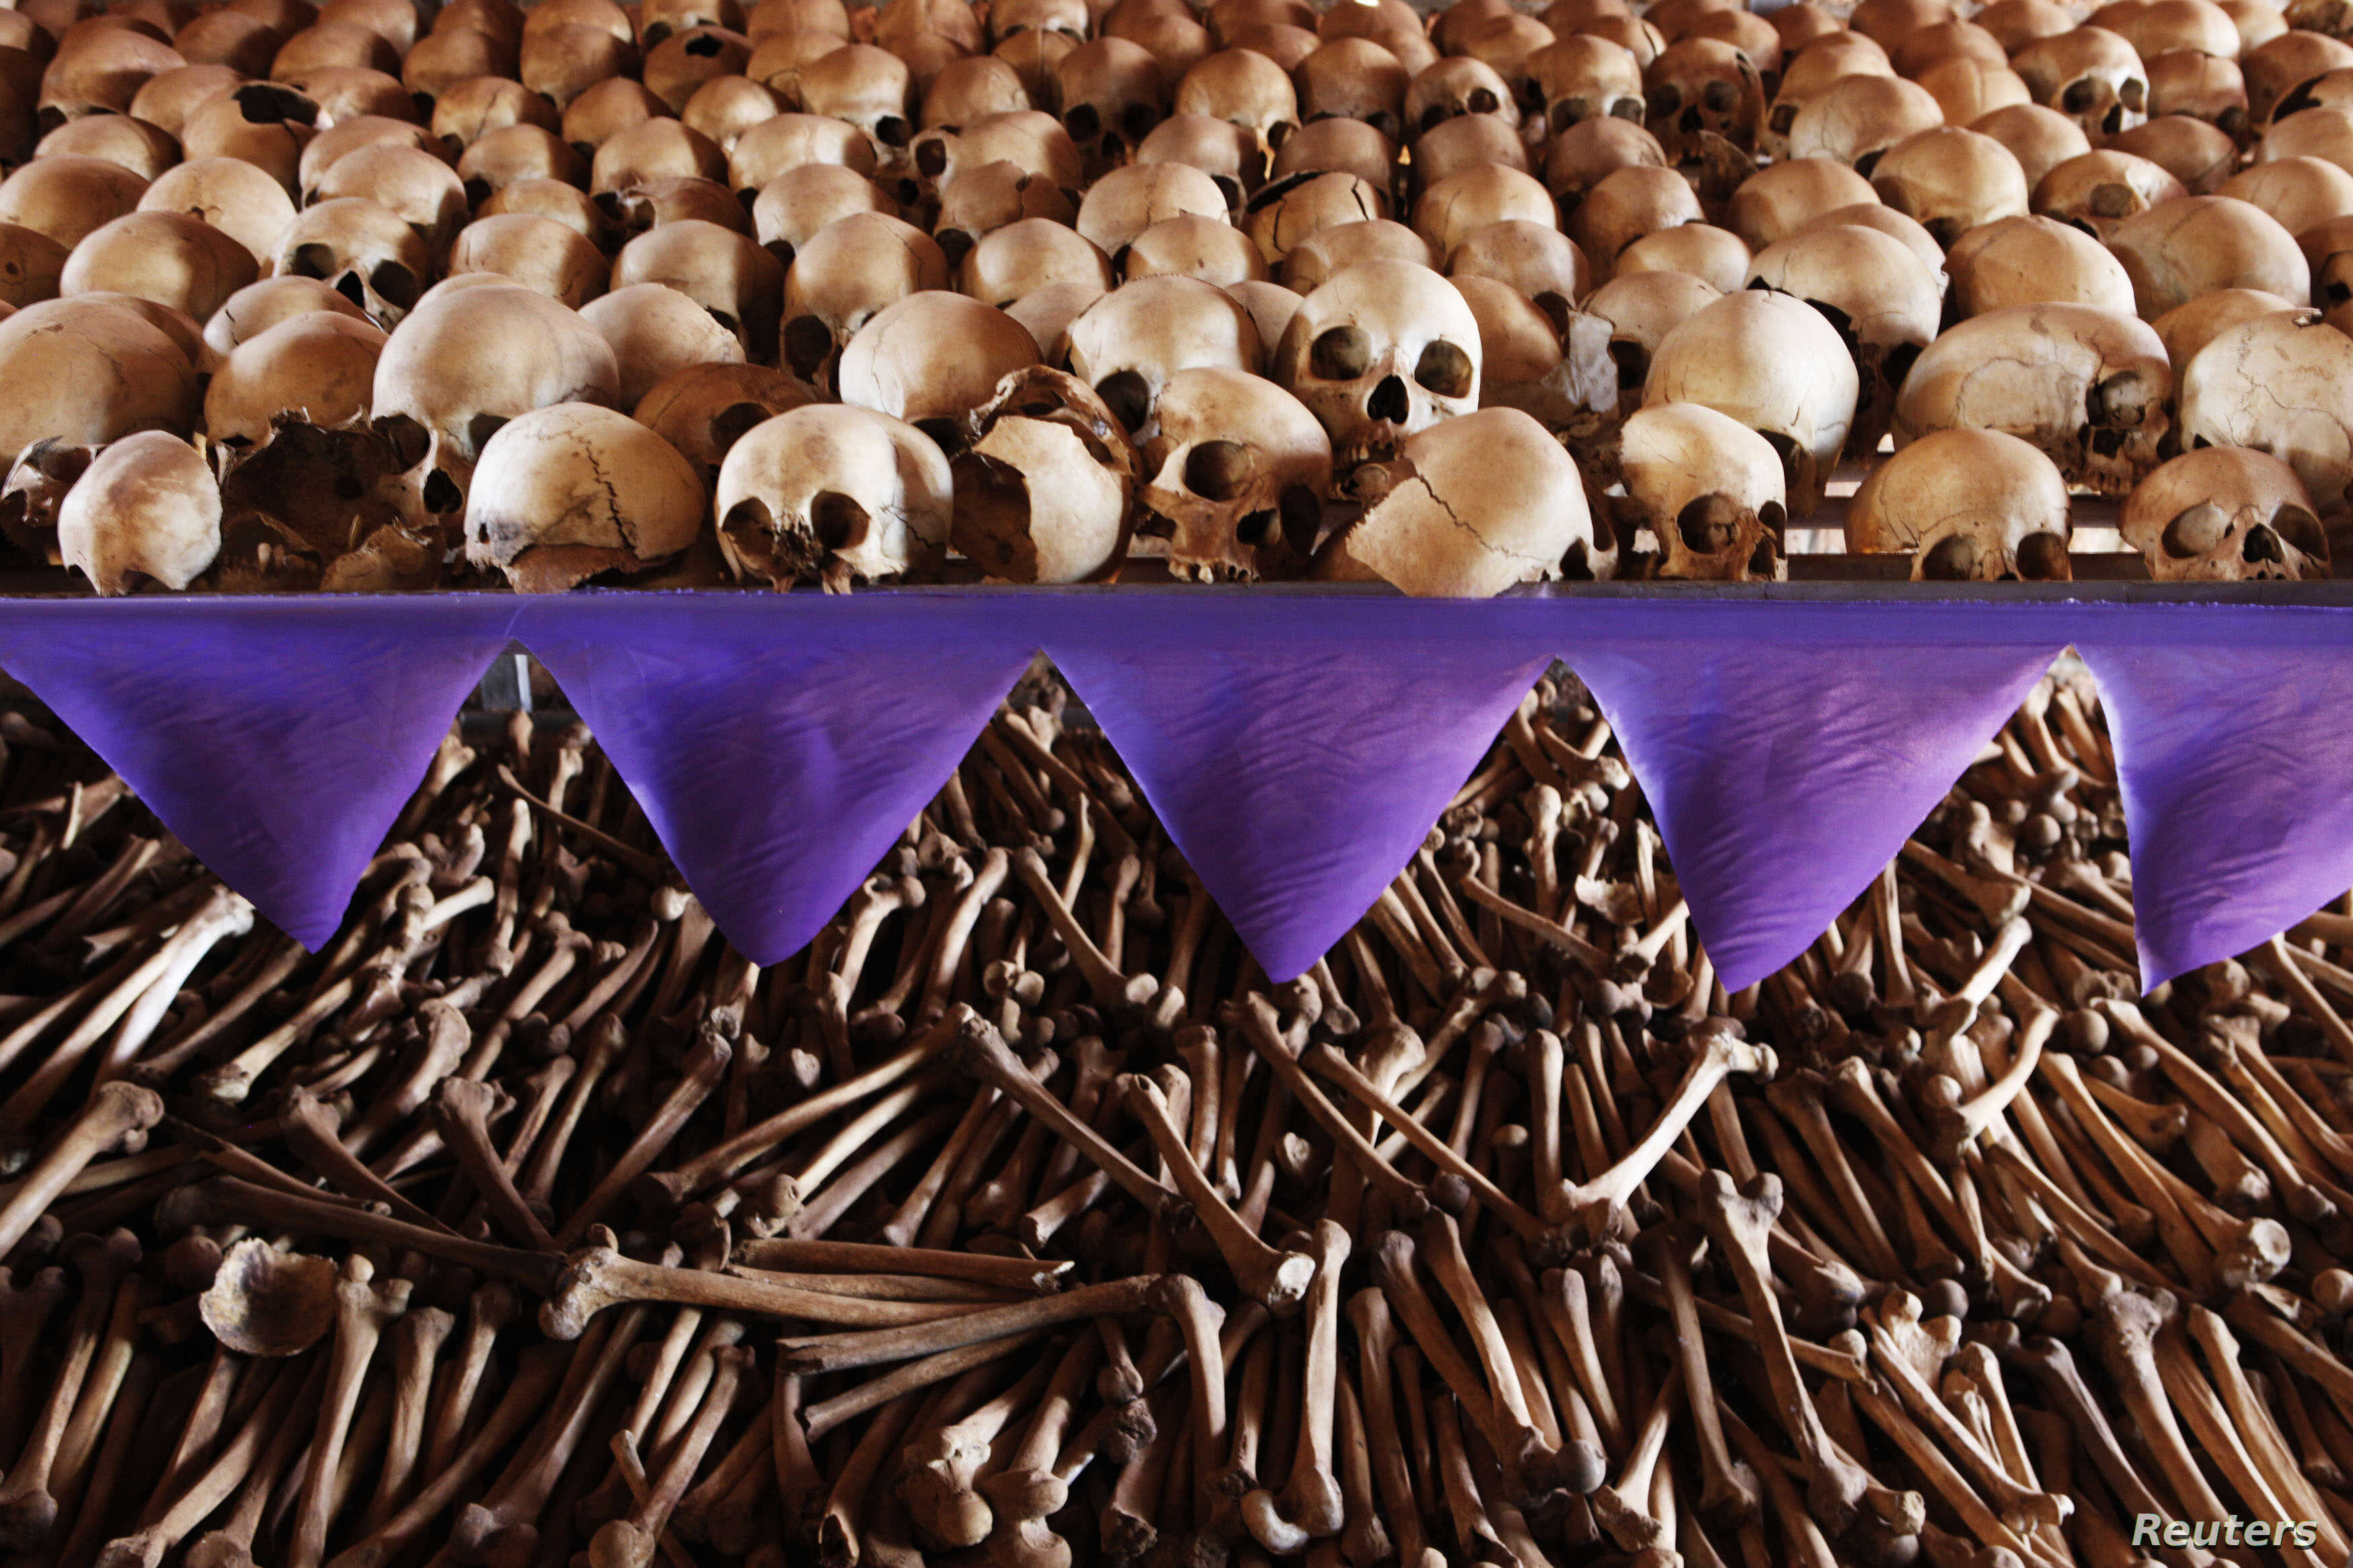 The skulls and bones of Rwandan victims rest on shelves at a genocide memorial inside the church at Ntarama just outside the capital Kigali, August 6, 2010.